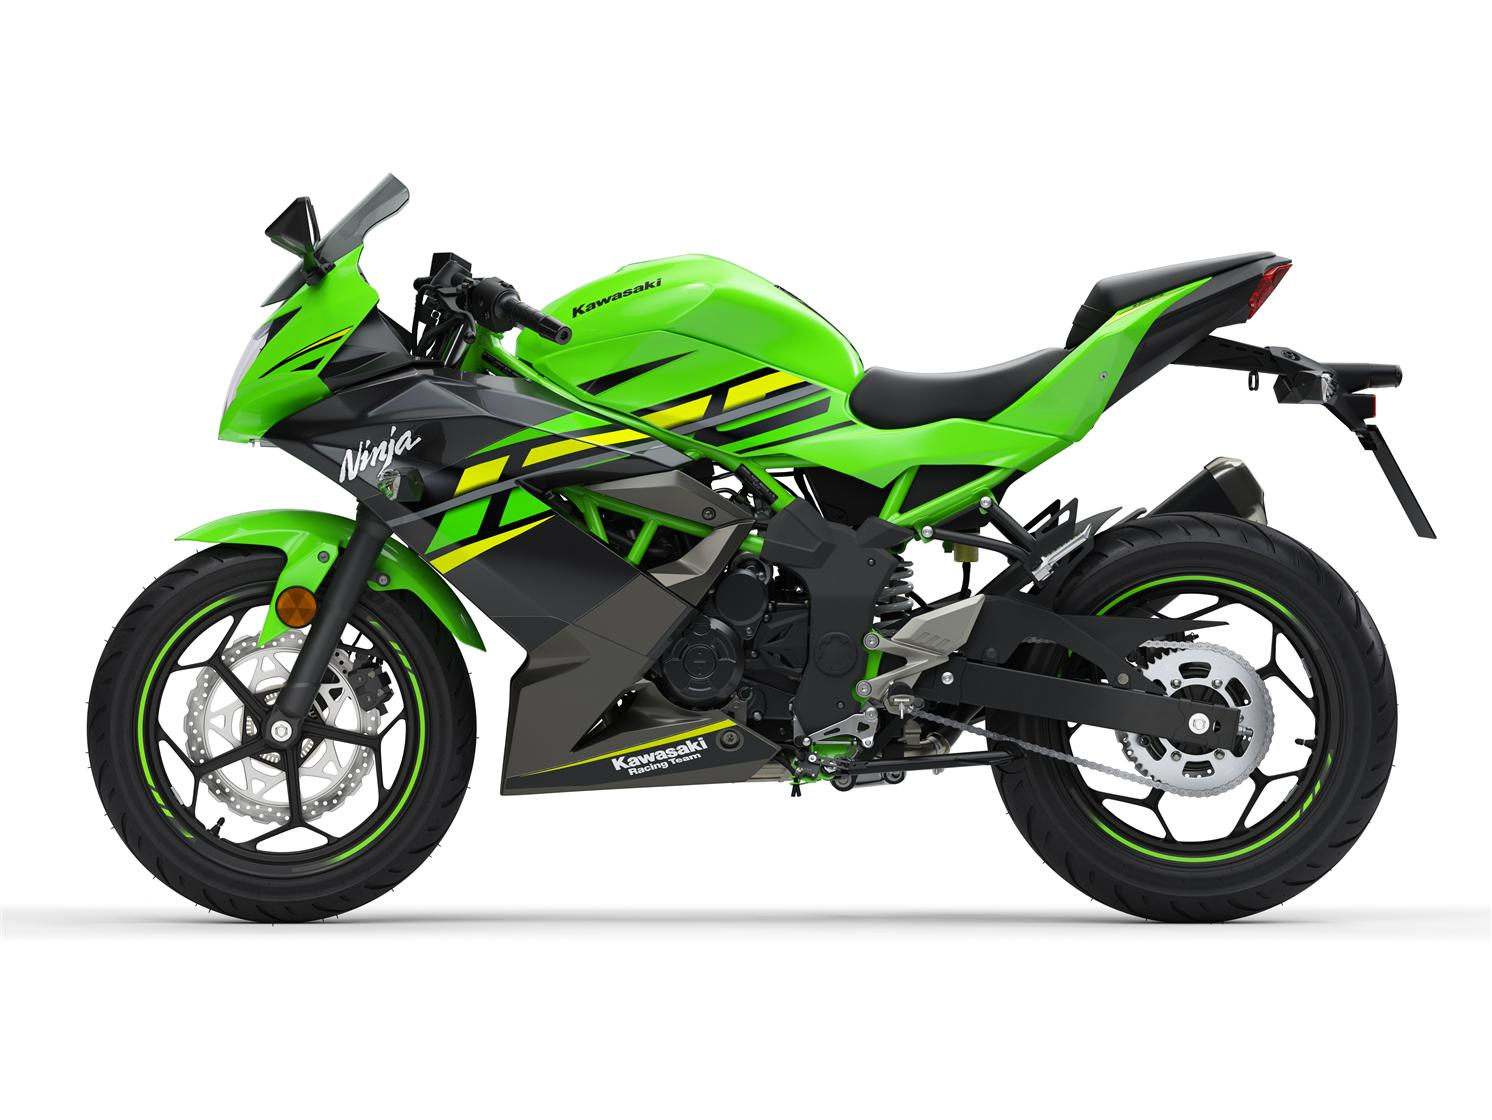 Kawasaki Presents Ninja 125 Or Z125 The Toughest Choice